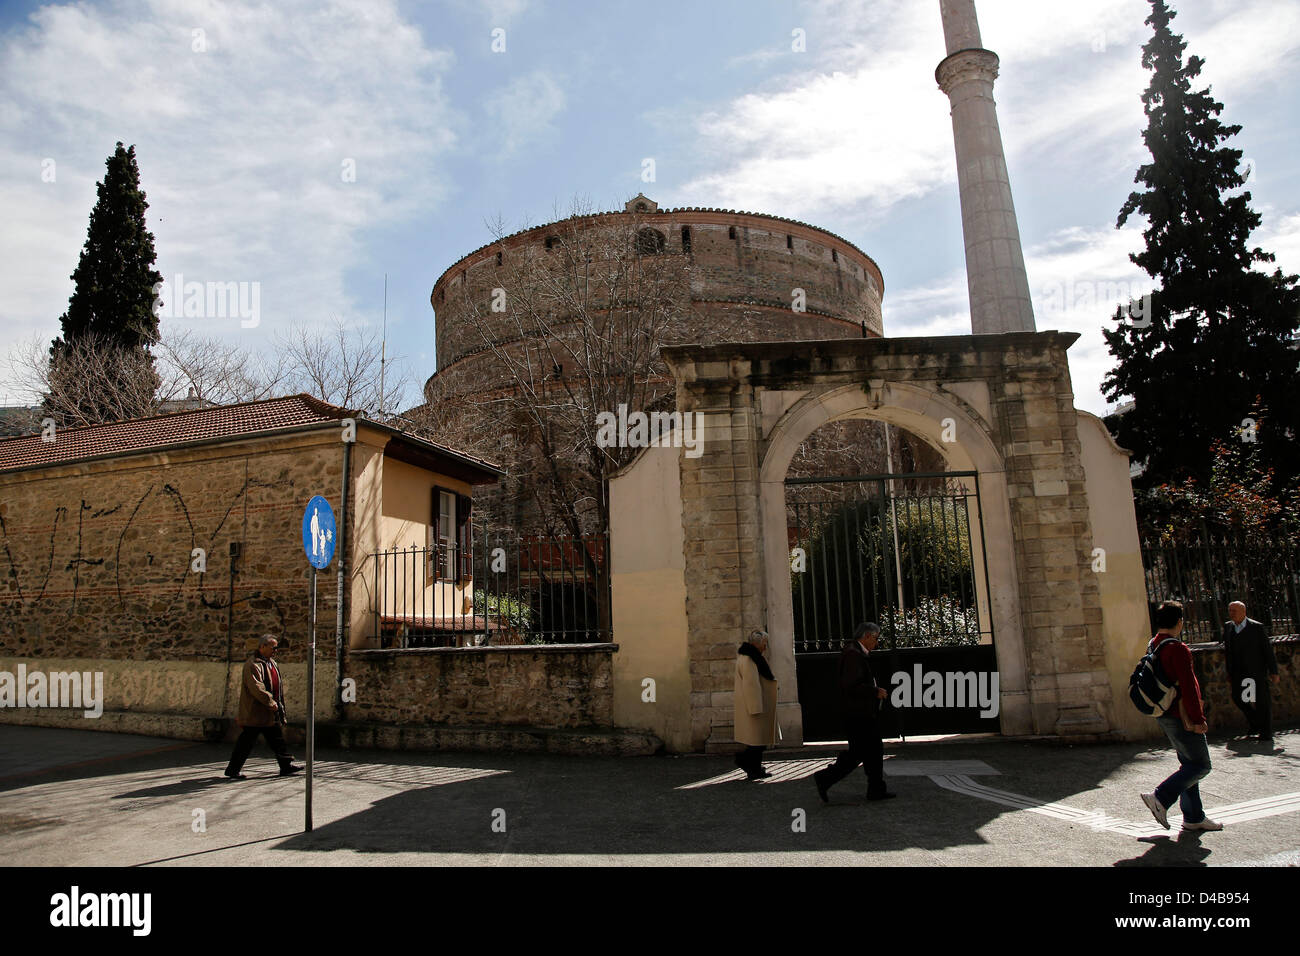 Thessaloniki, Greece. 11th March, 2013. People walks outside of the Rotunda, a 4th-century monument in Thessaloniki. - Stock Image